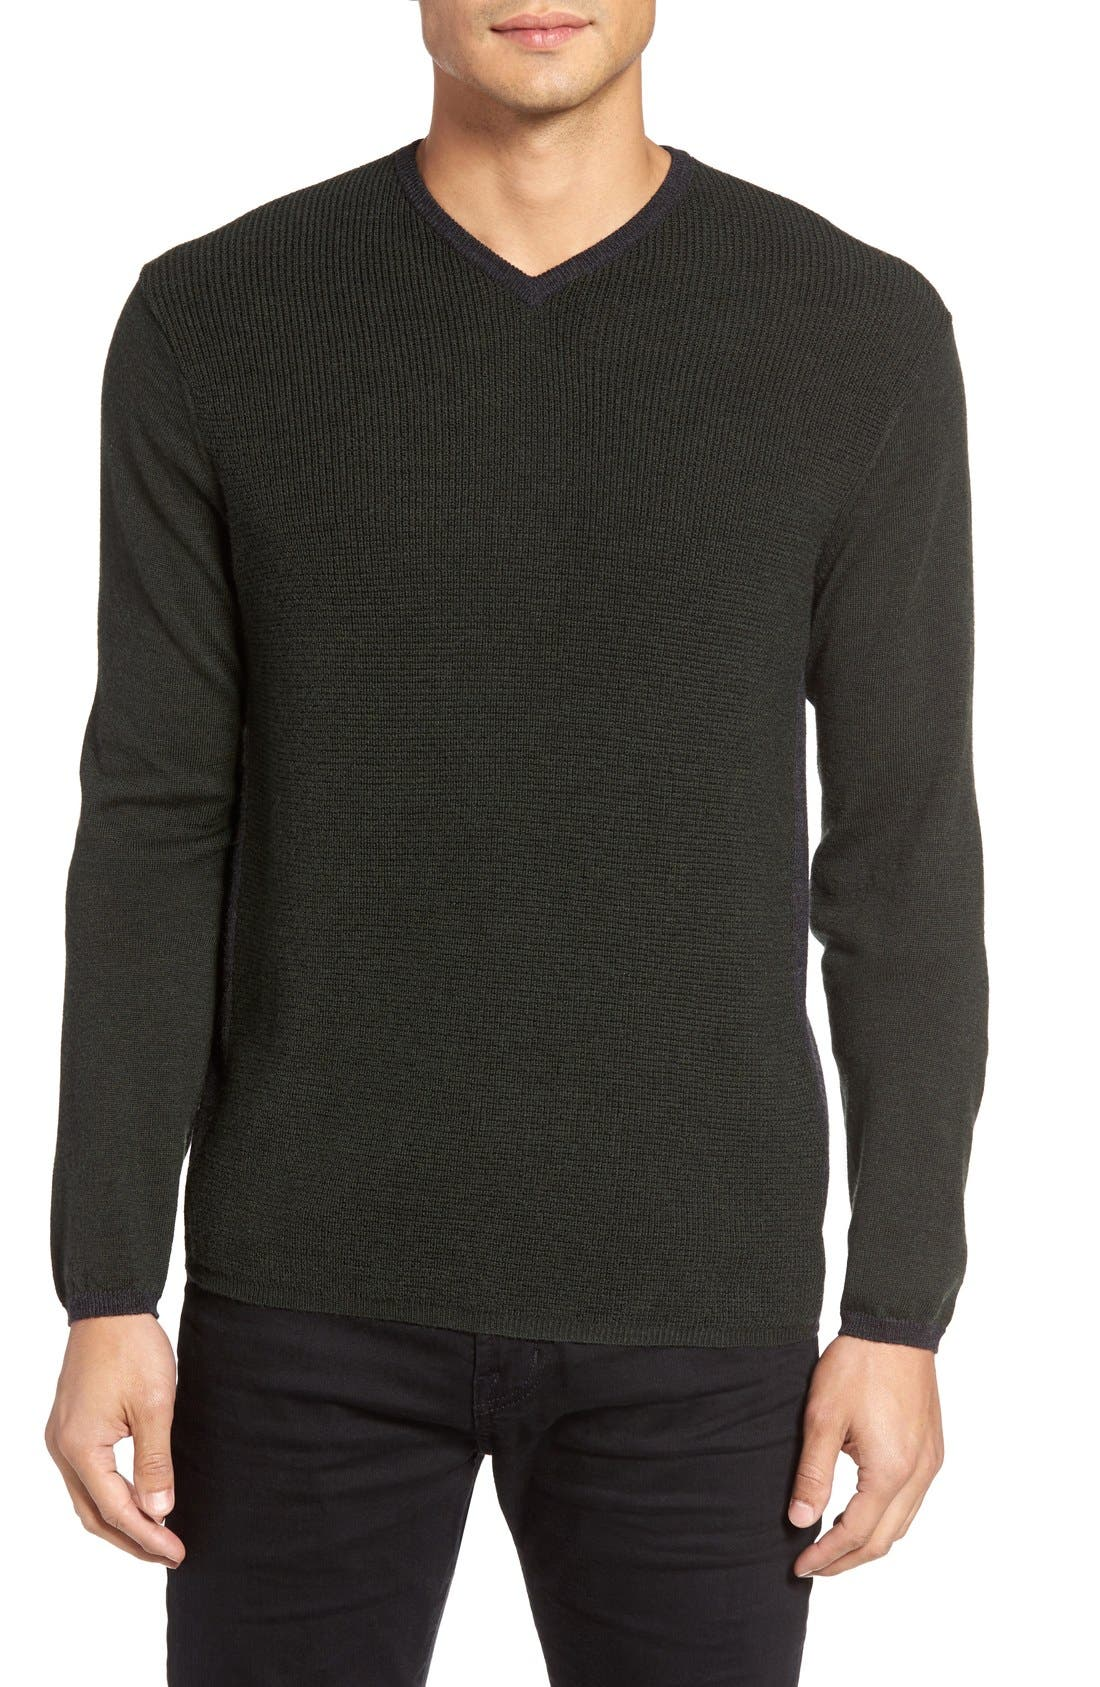 Main Image - Zachary Prell V-Neck Colorblock Merino Wool Pullover